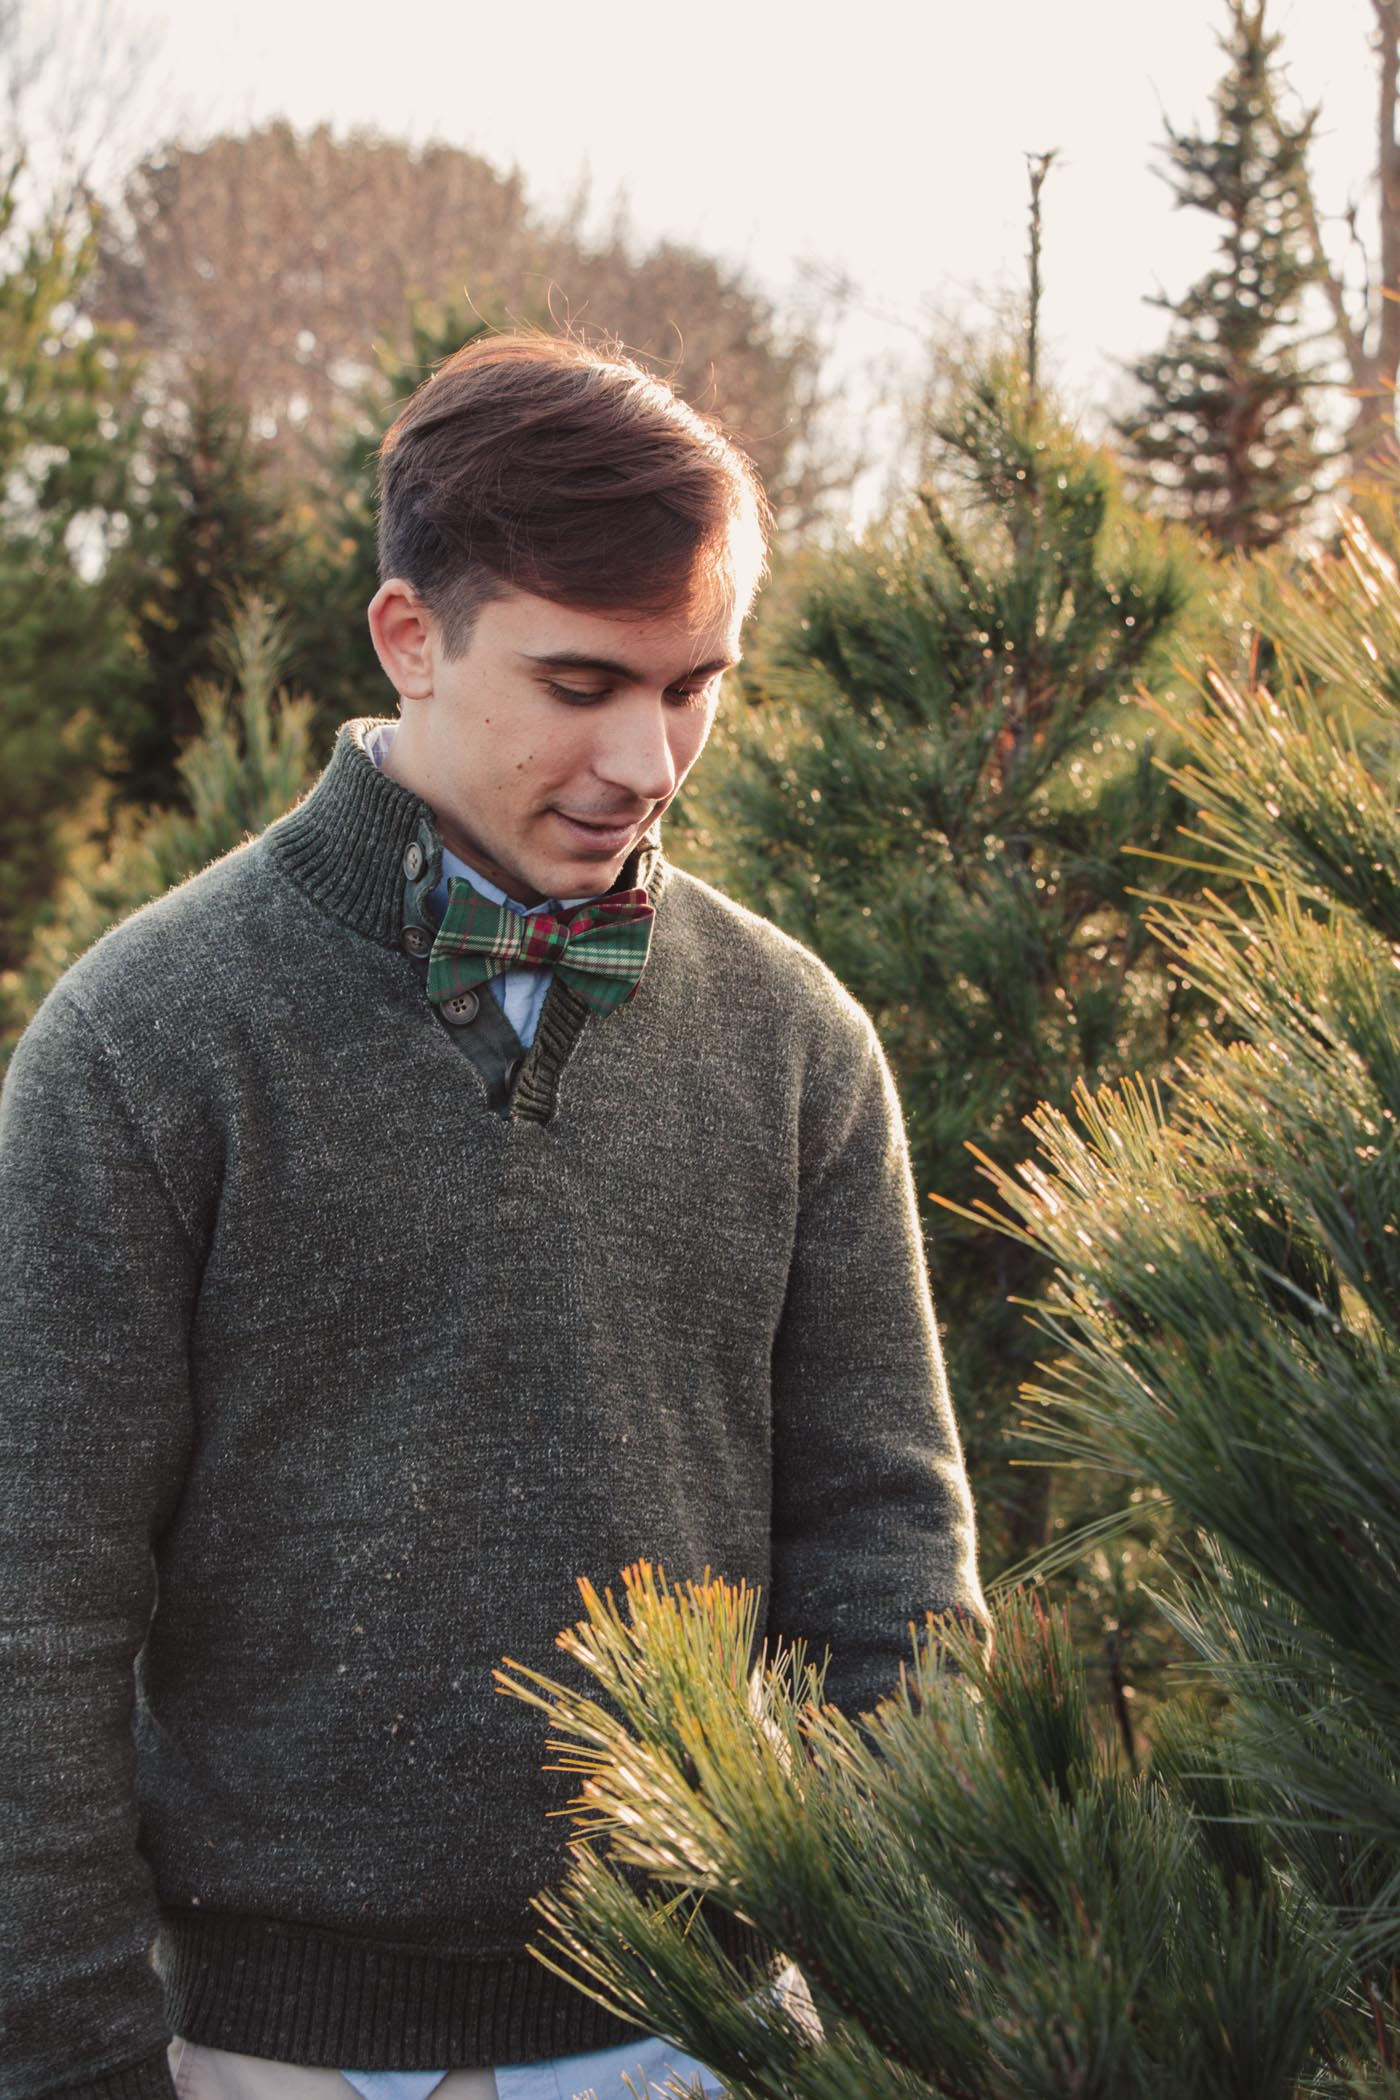 Chopping down our Christmas tree - Simply Lovebirds - New England Lifestyle Blog